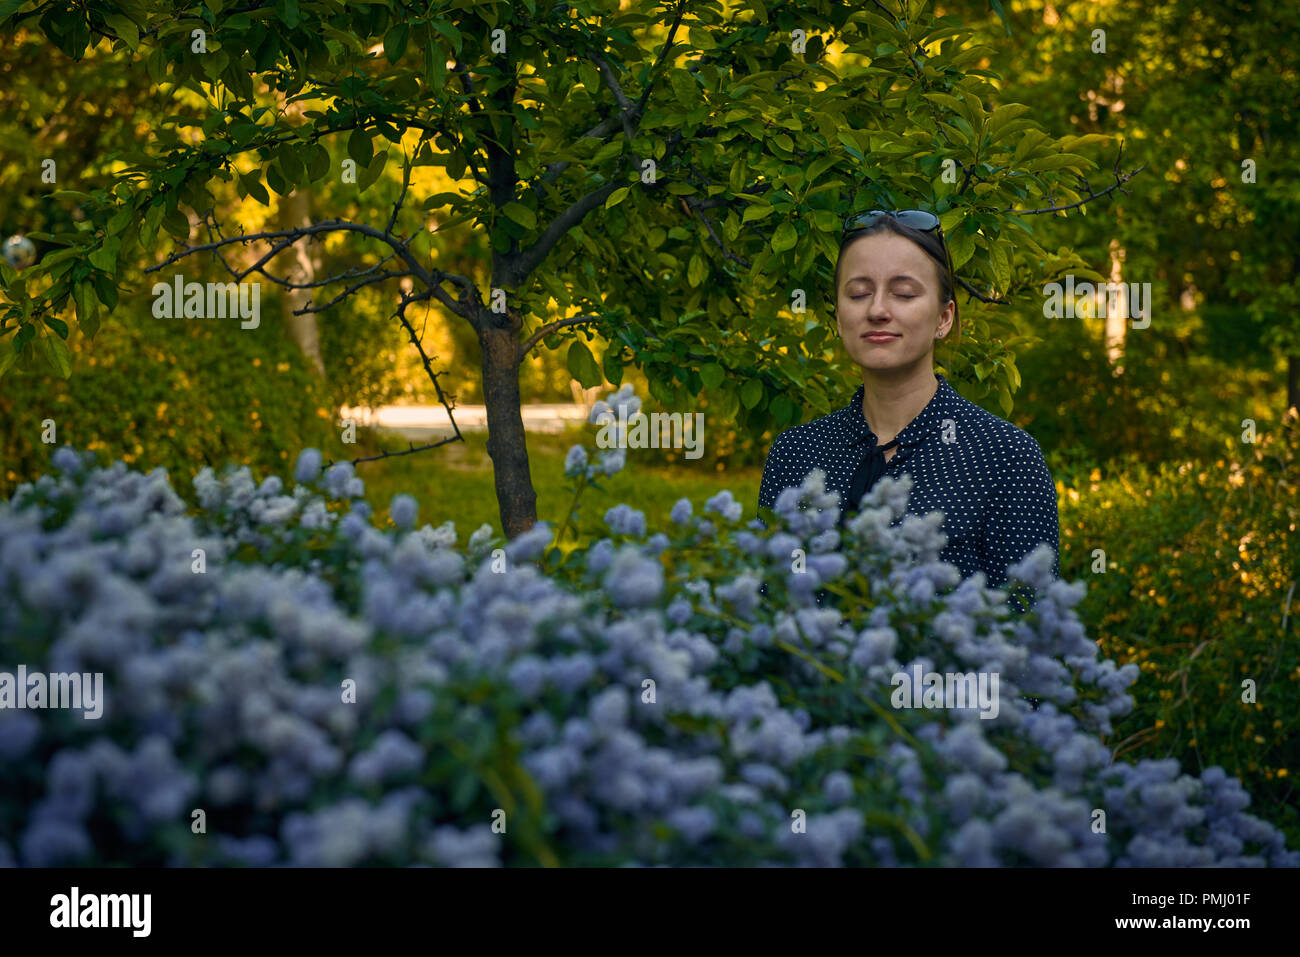 Smiling young caucasian woman with shut eyes standing near the blooming bush with blue flowers in the public park - Stock Image